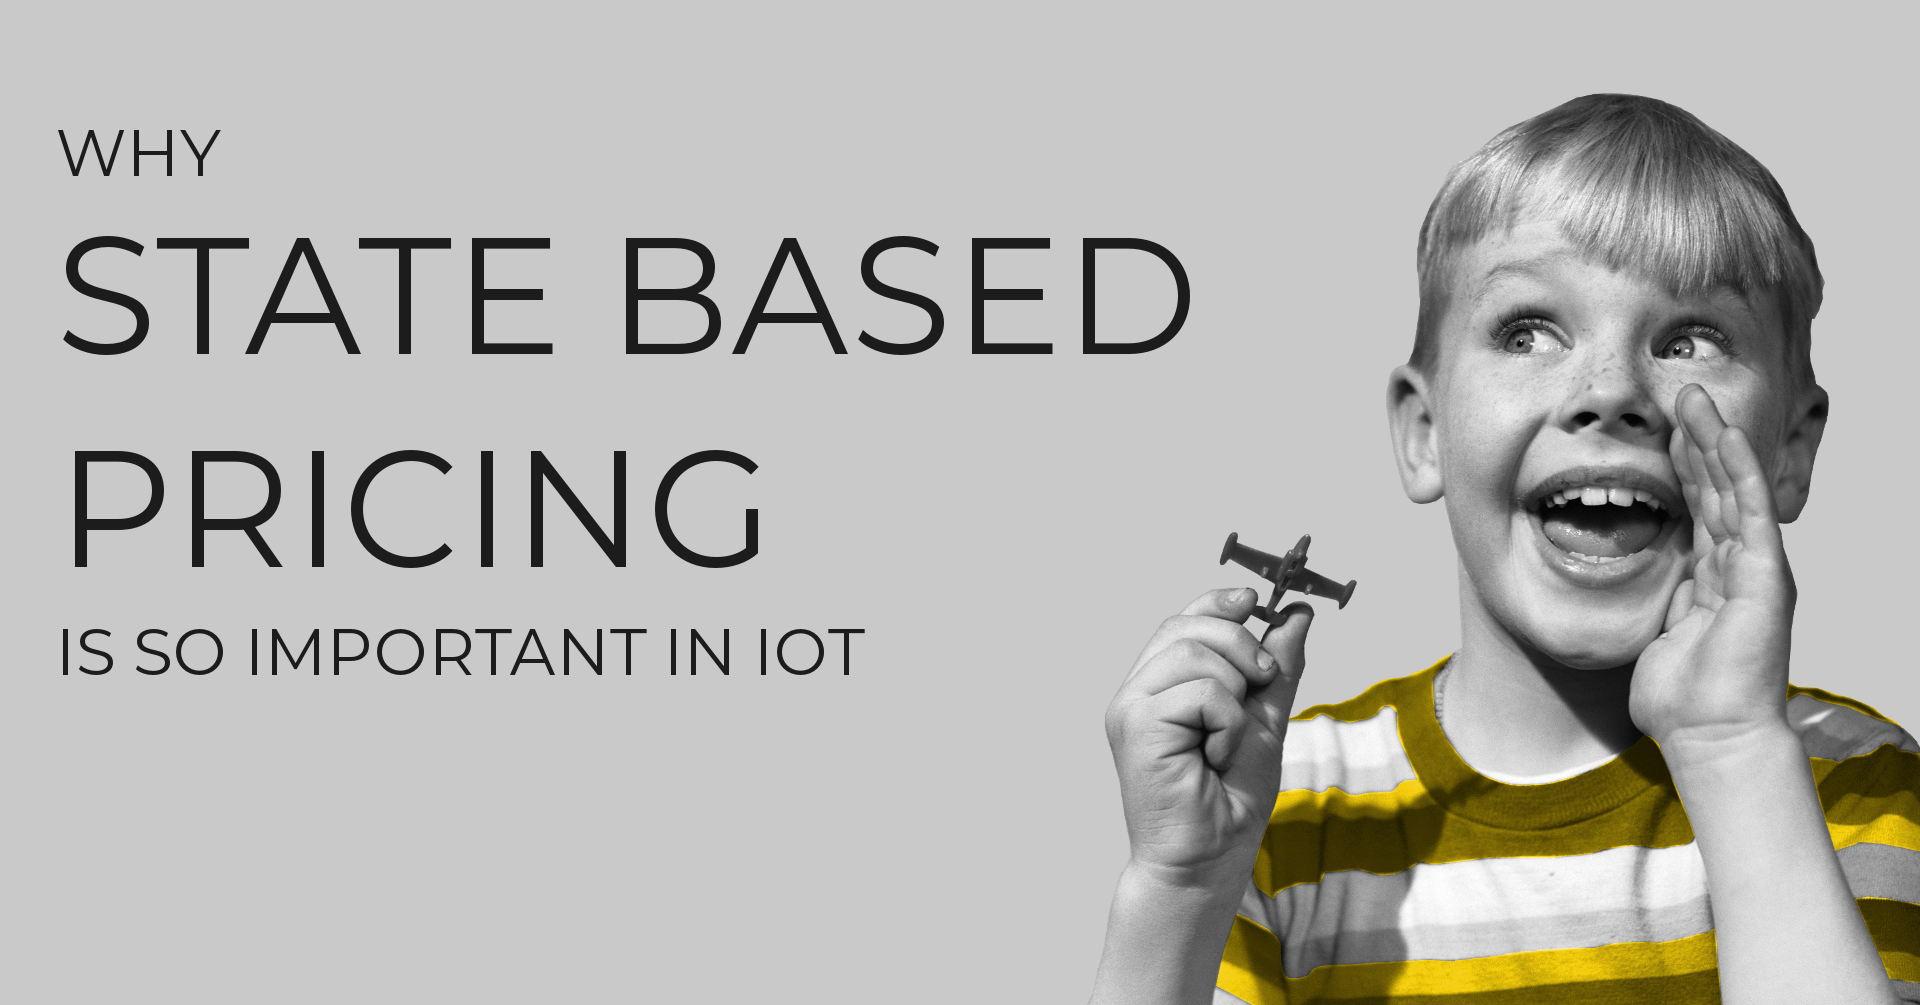 Why State Based Pricing is Important in IoT